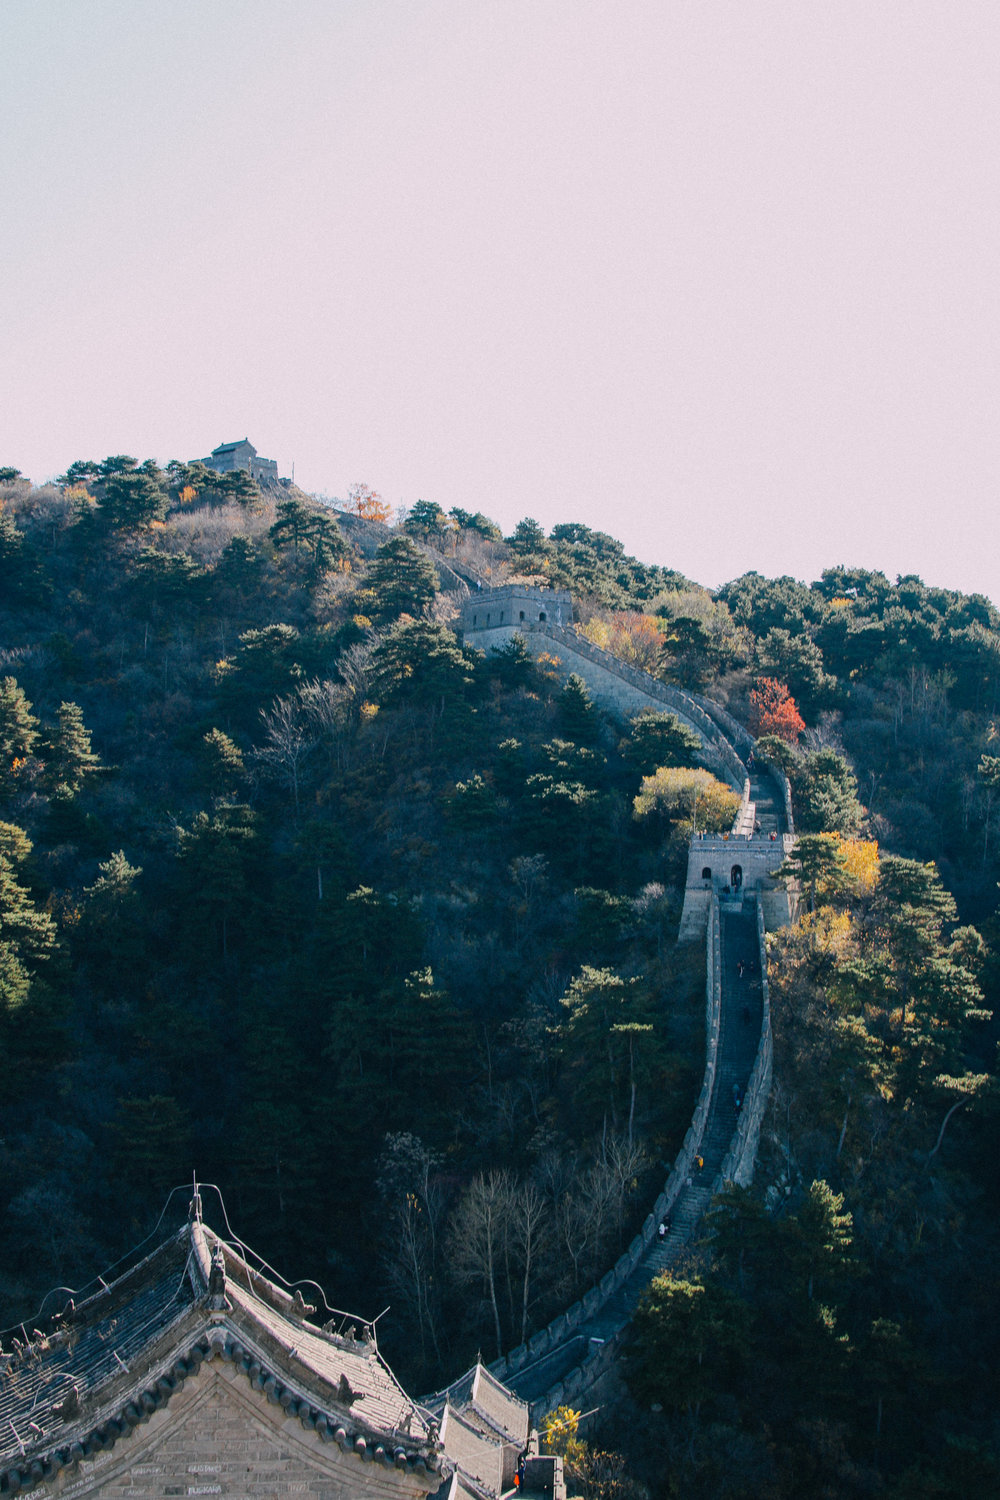 GreatWall-63.jpg